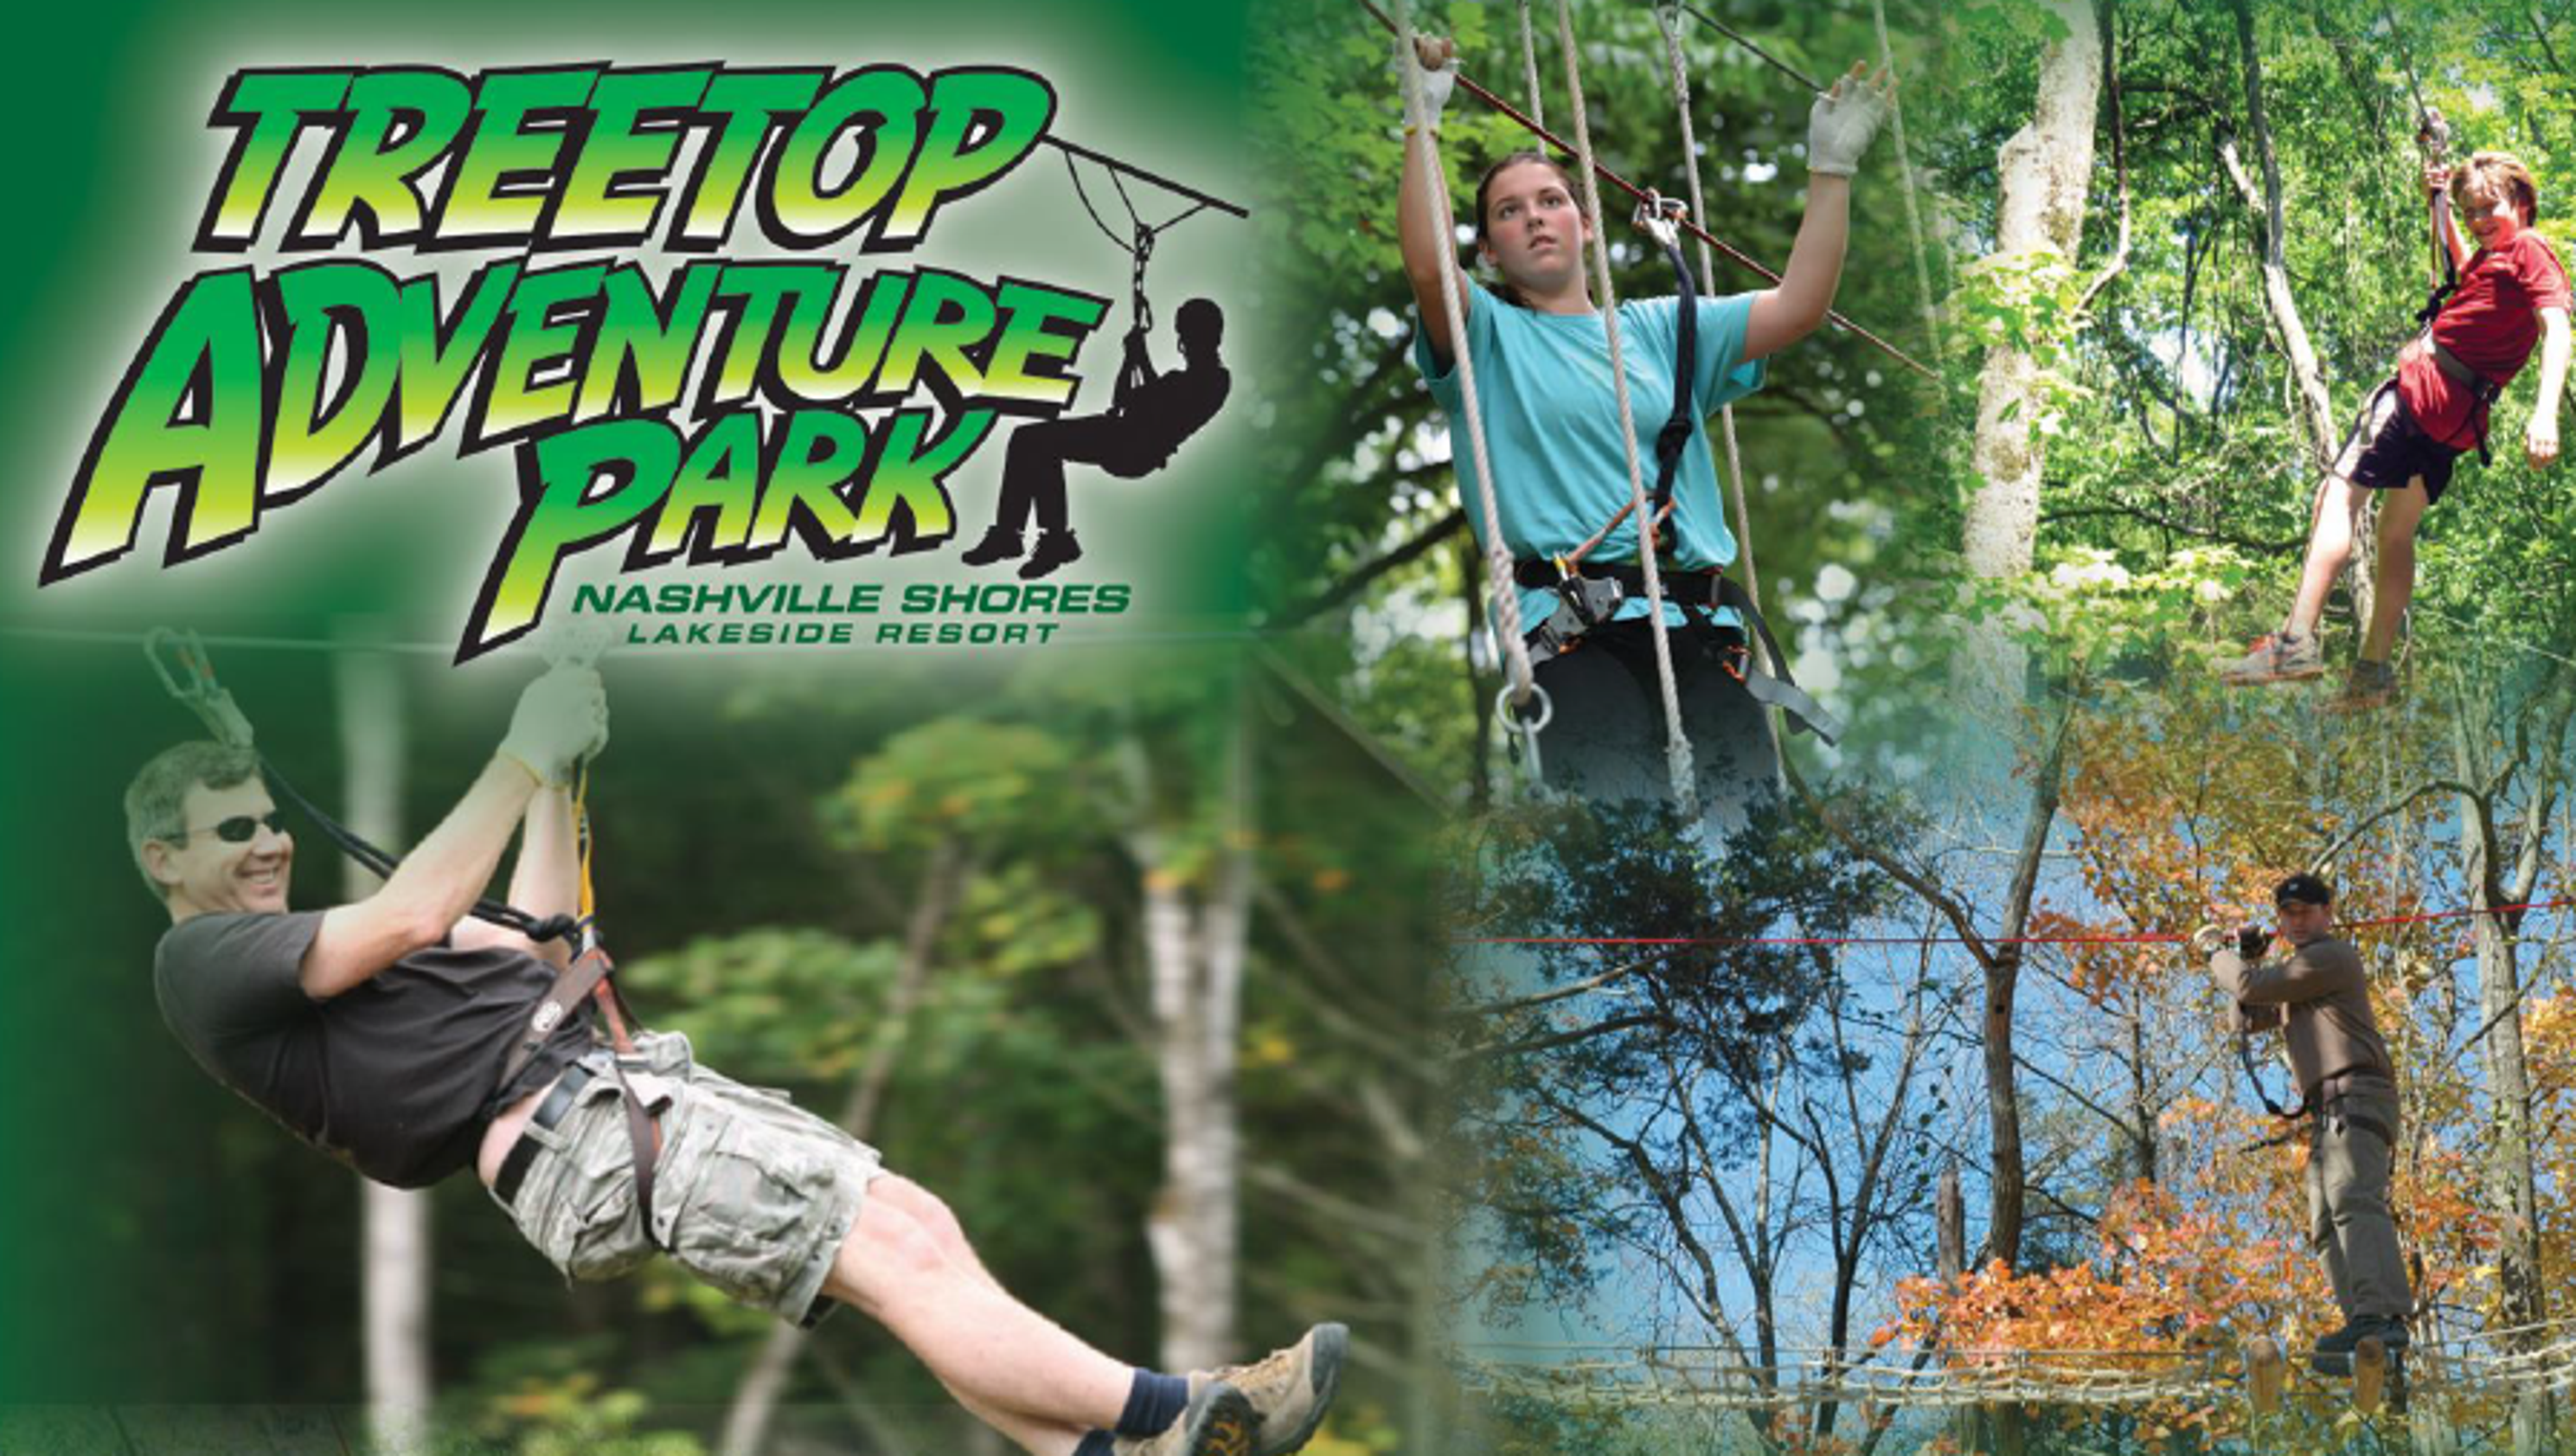 Treetop adventure park coupons